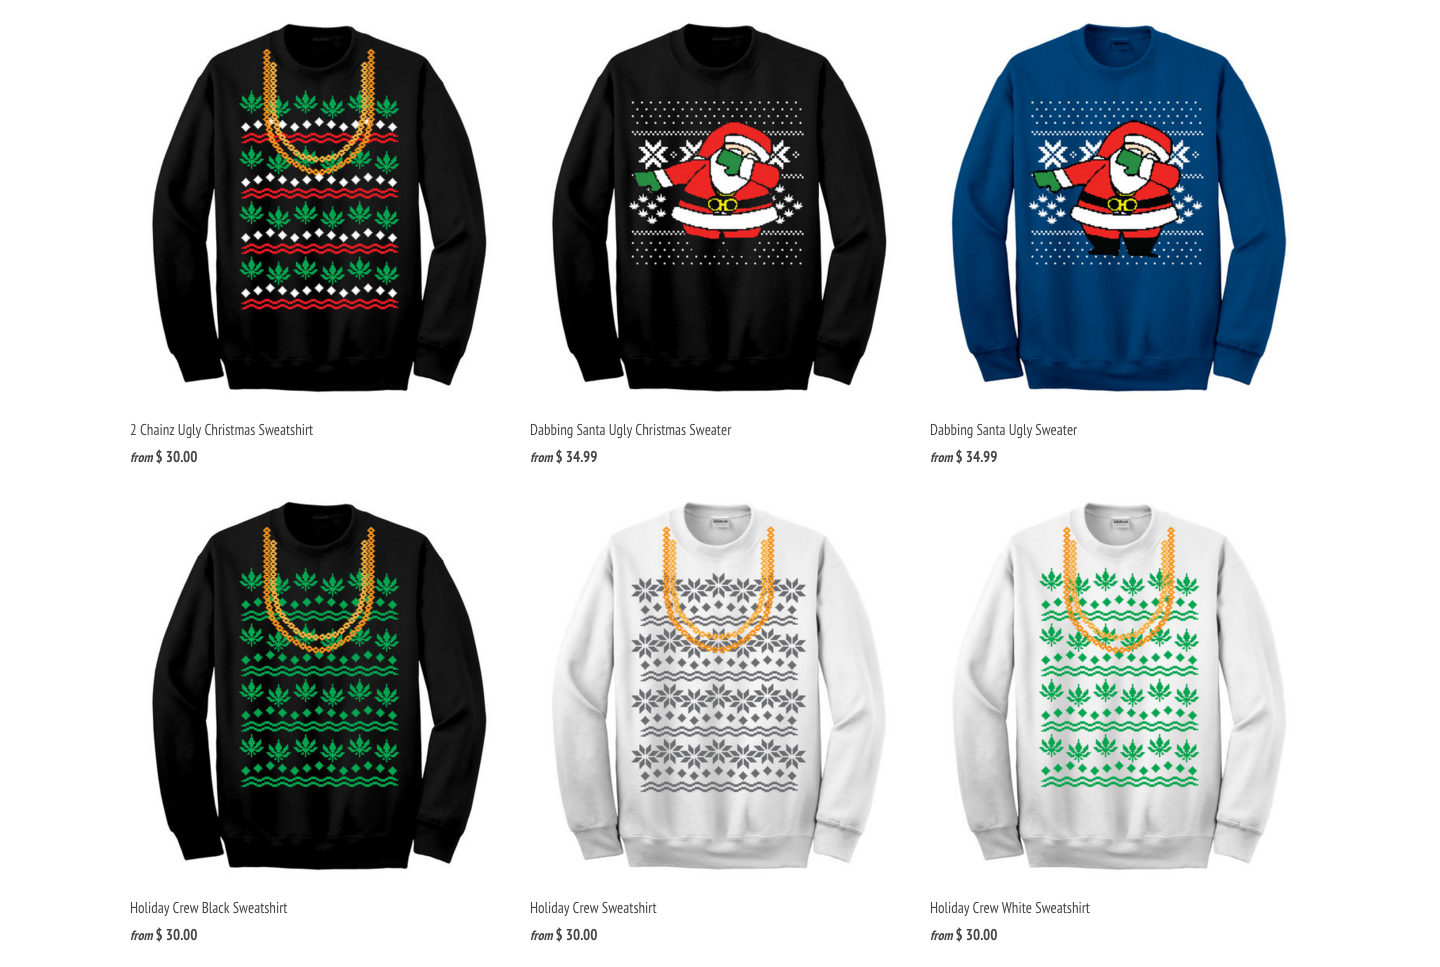 screencapture-www-2chainzshop-com-collections-all-holiday-1448288457626